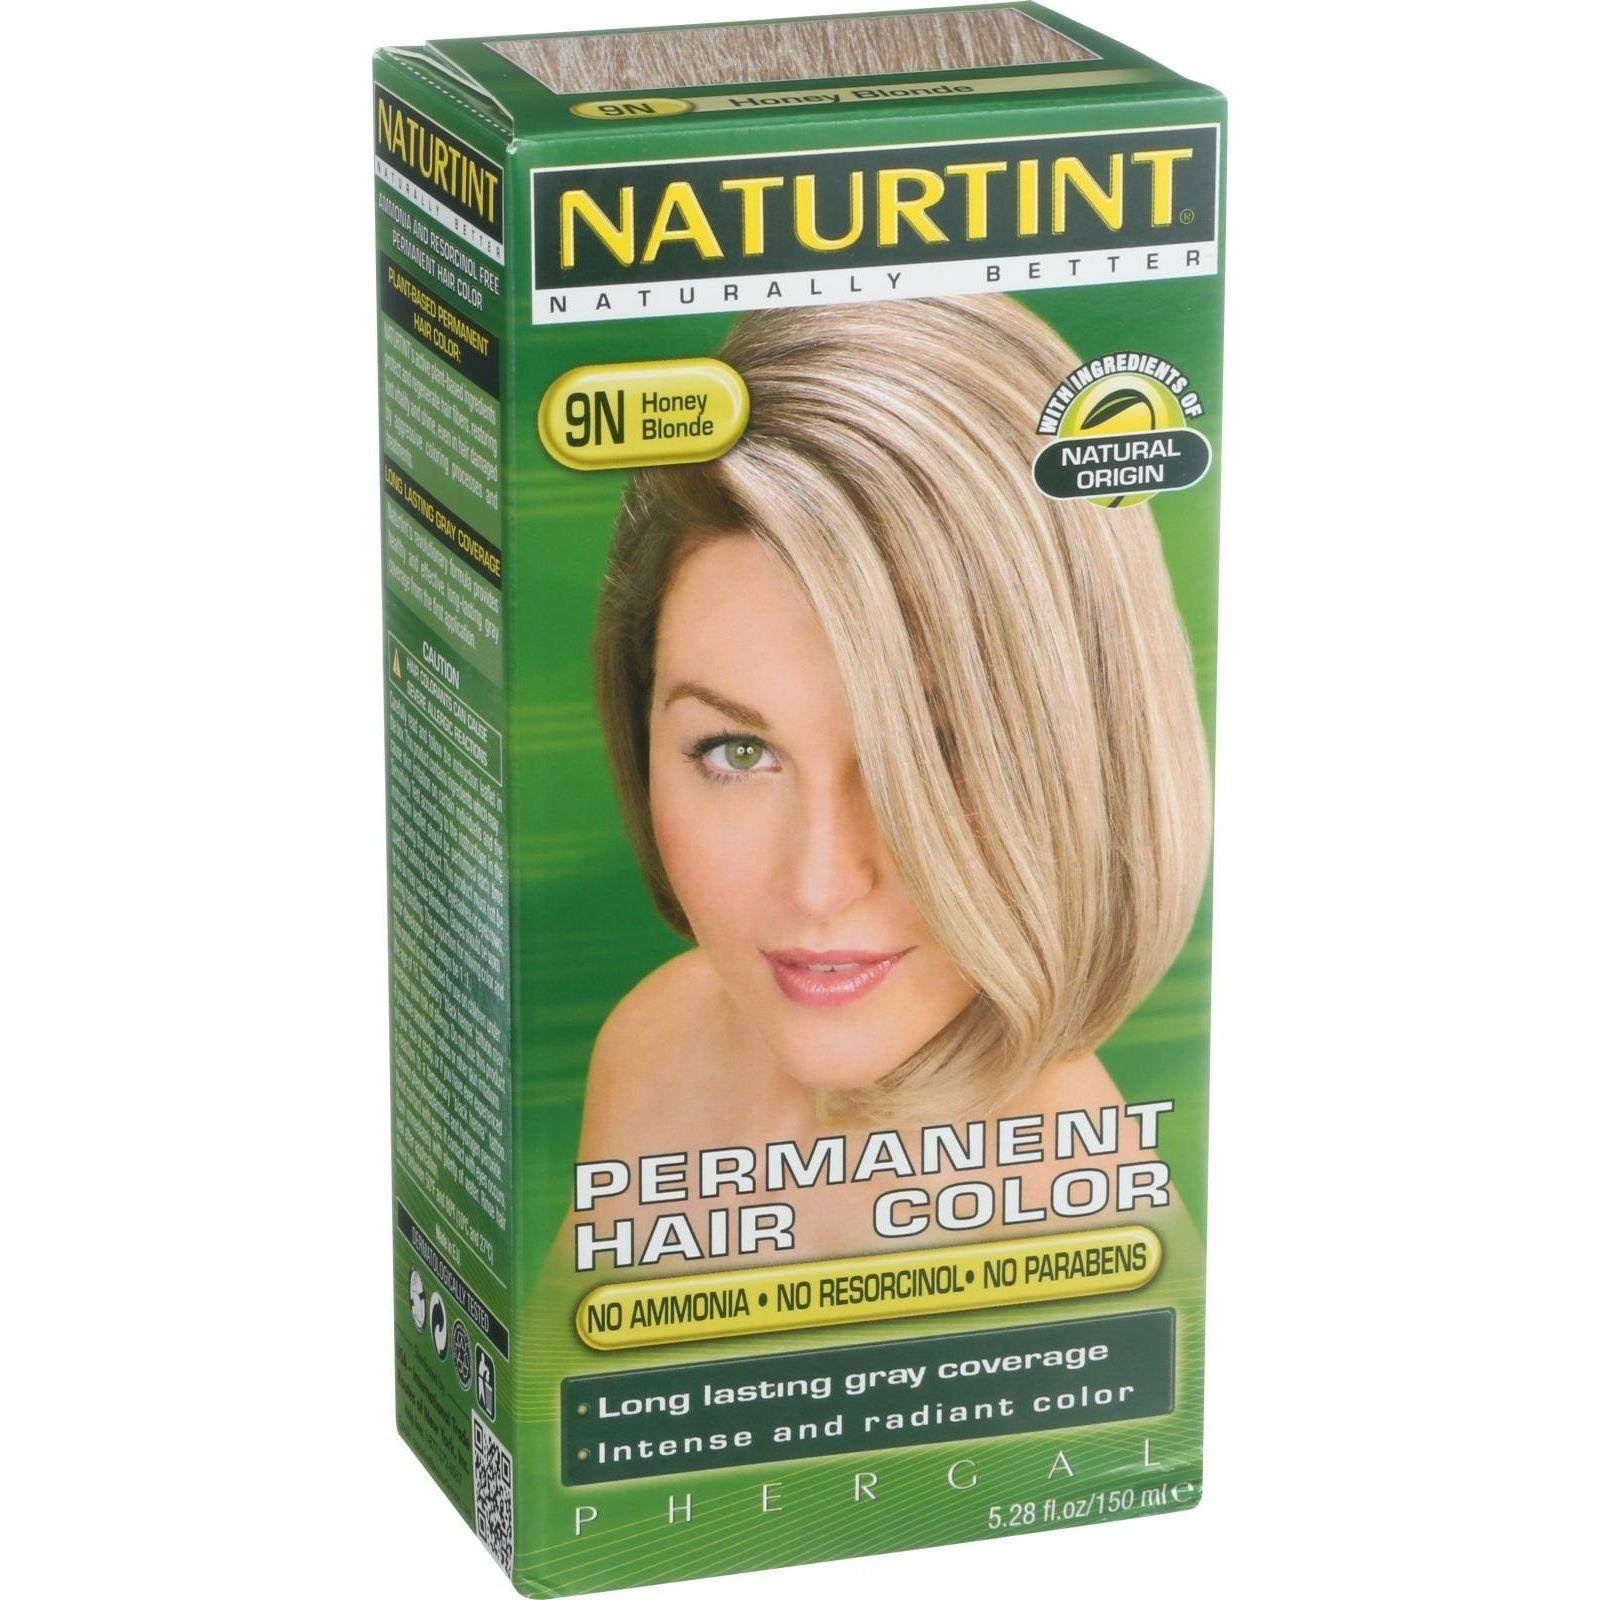 Naturtint Naturally Better Permanent Hair Colour - 9N Honey Blonde, 165ml